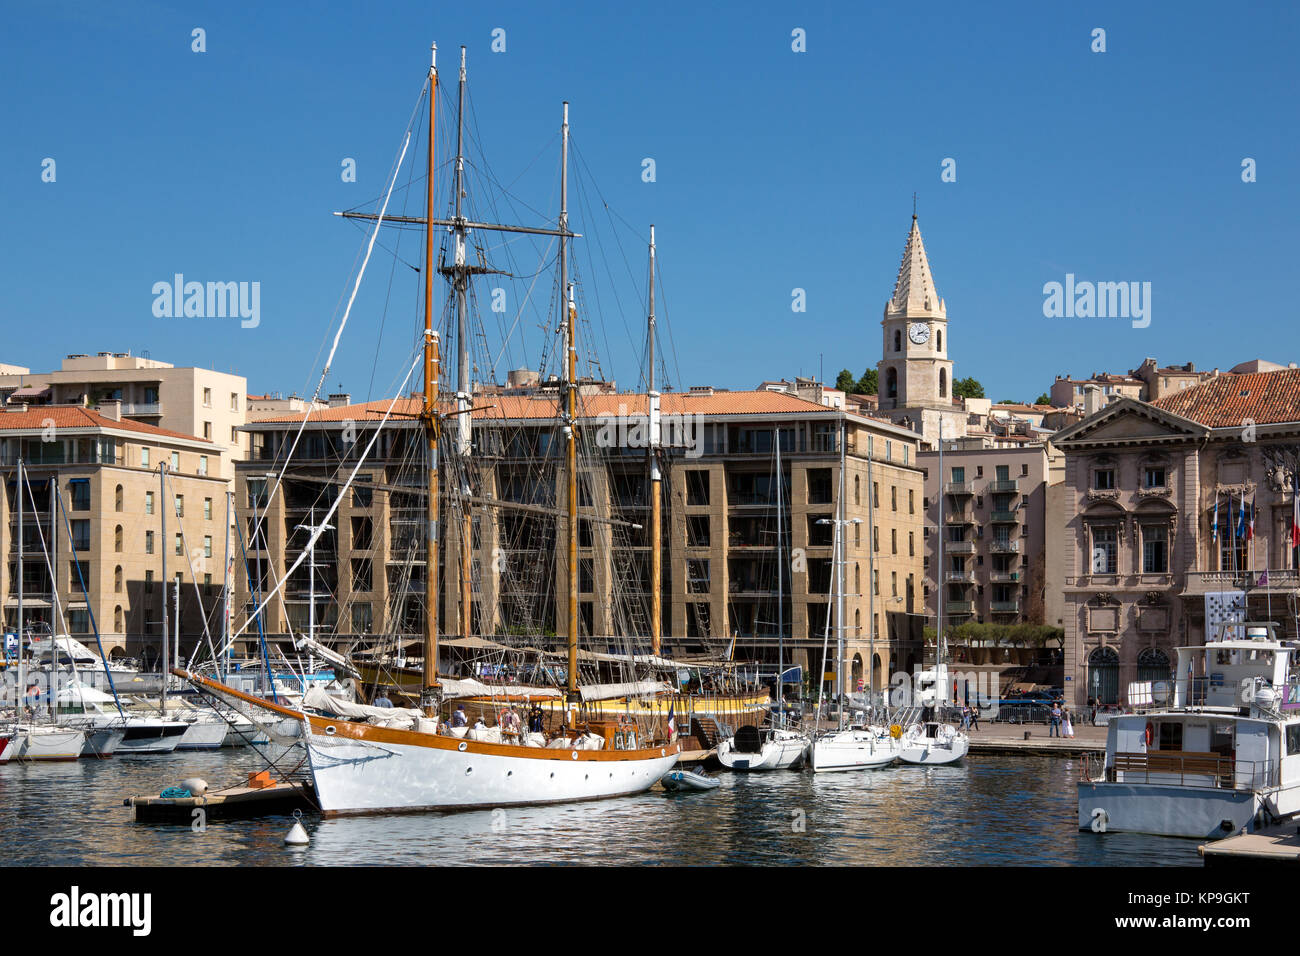 The Vieux Port area of the city of Marseille in the Cote d'Azur region of the South of France. - Stock Image